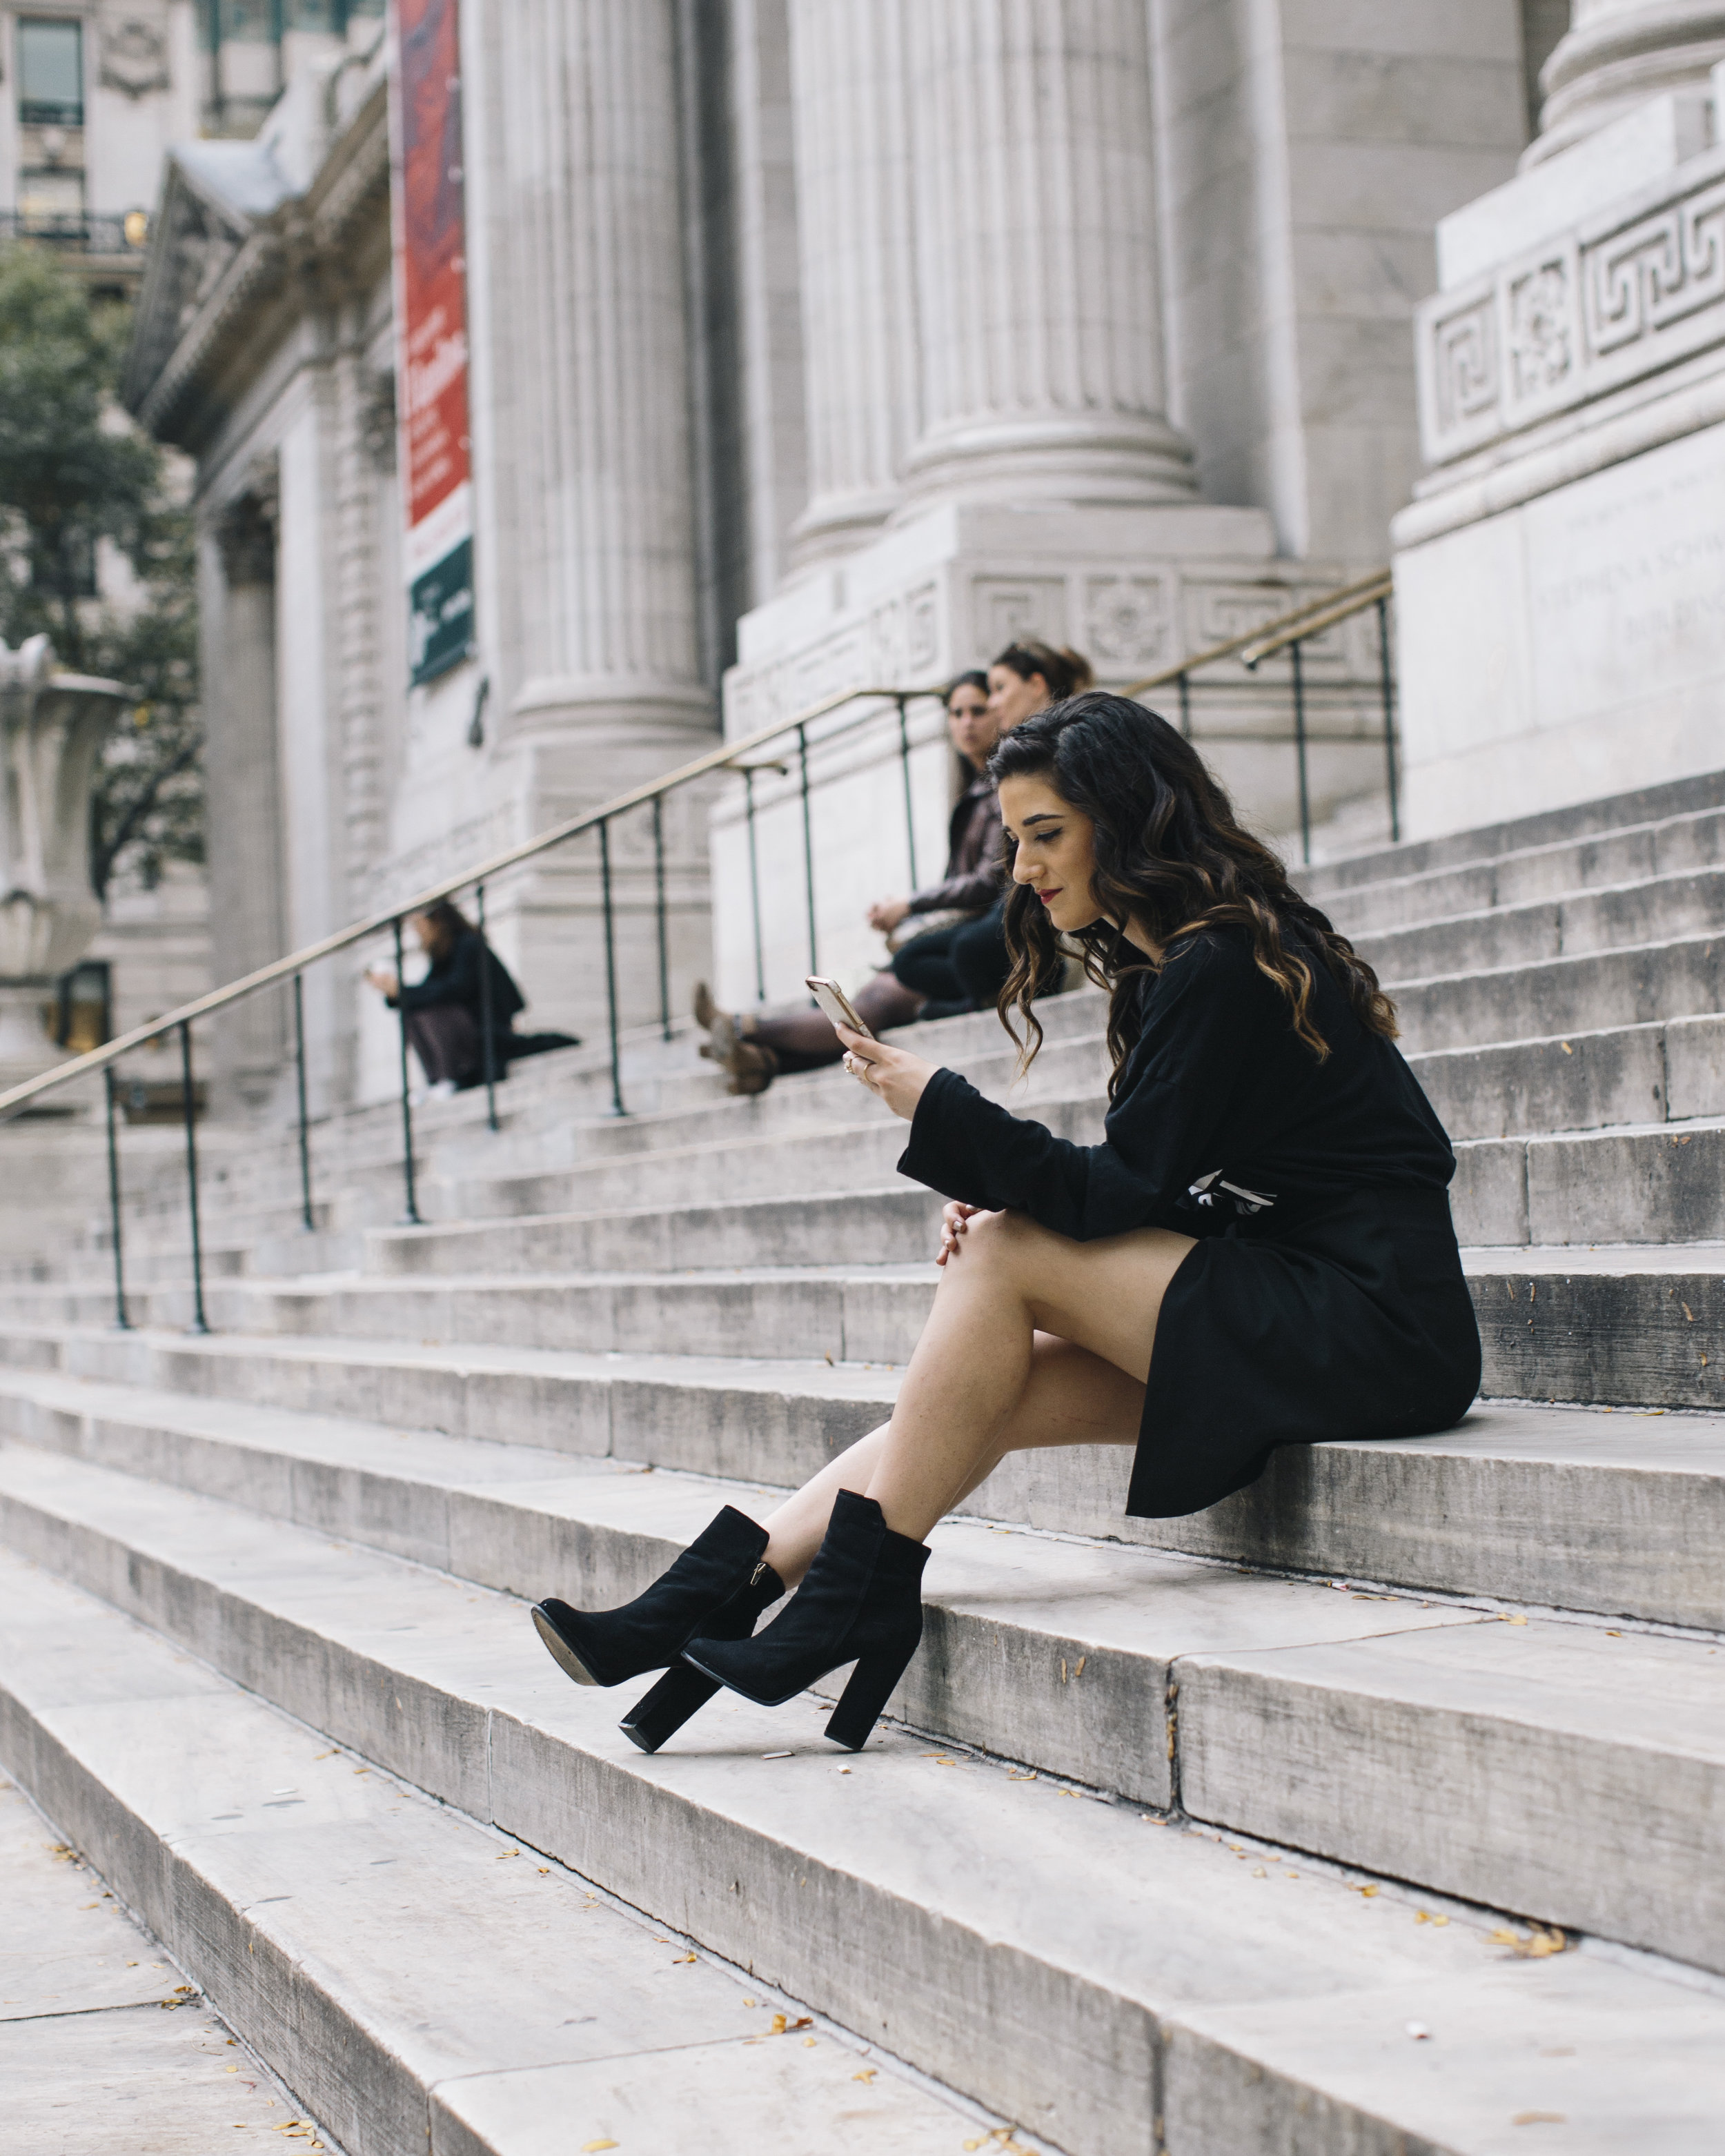 All Black Look What To Do When You Have Nothing To Wear Louboutins & Love Fashion Blog Esther Santer NYC Street Style Blogger Outfit OOTD Trendy Braid Hairstyle Inspo Monochrome Hair Beautiful Pretty Photoshoot Model Fall Women Girls Zara Wrap Skirt.jpg